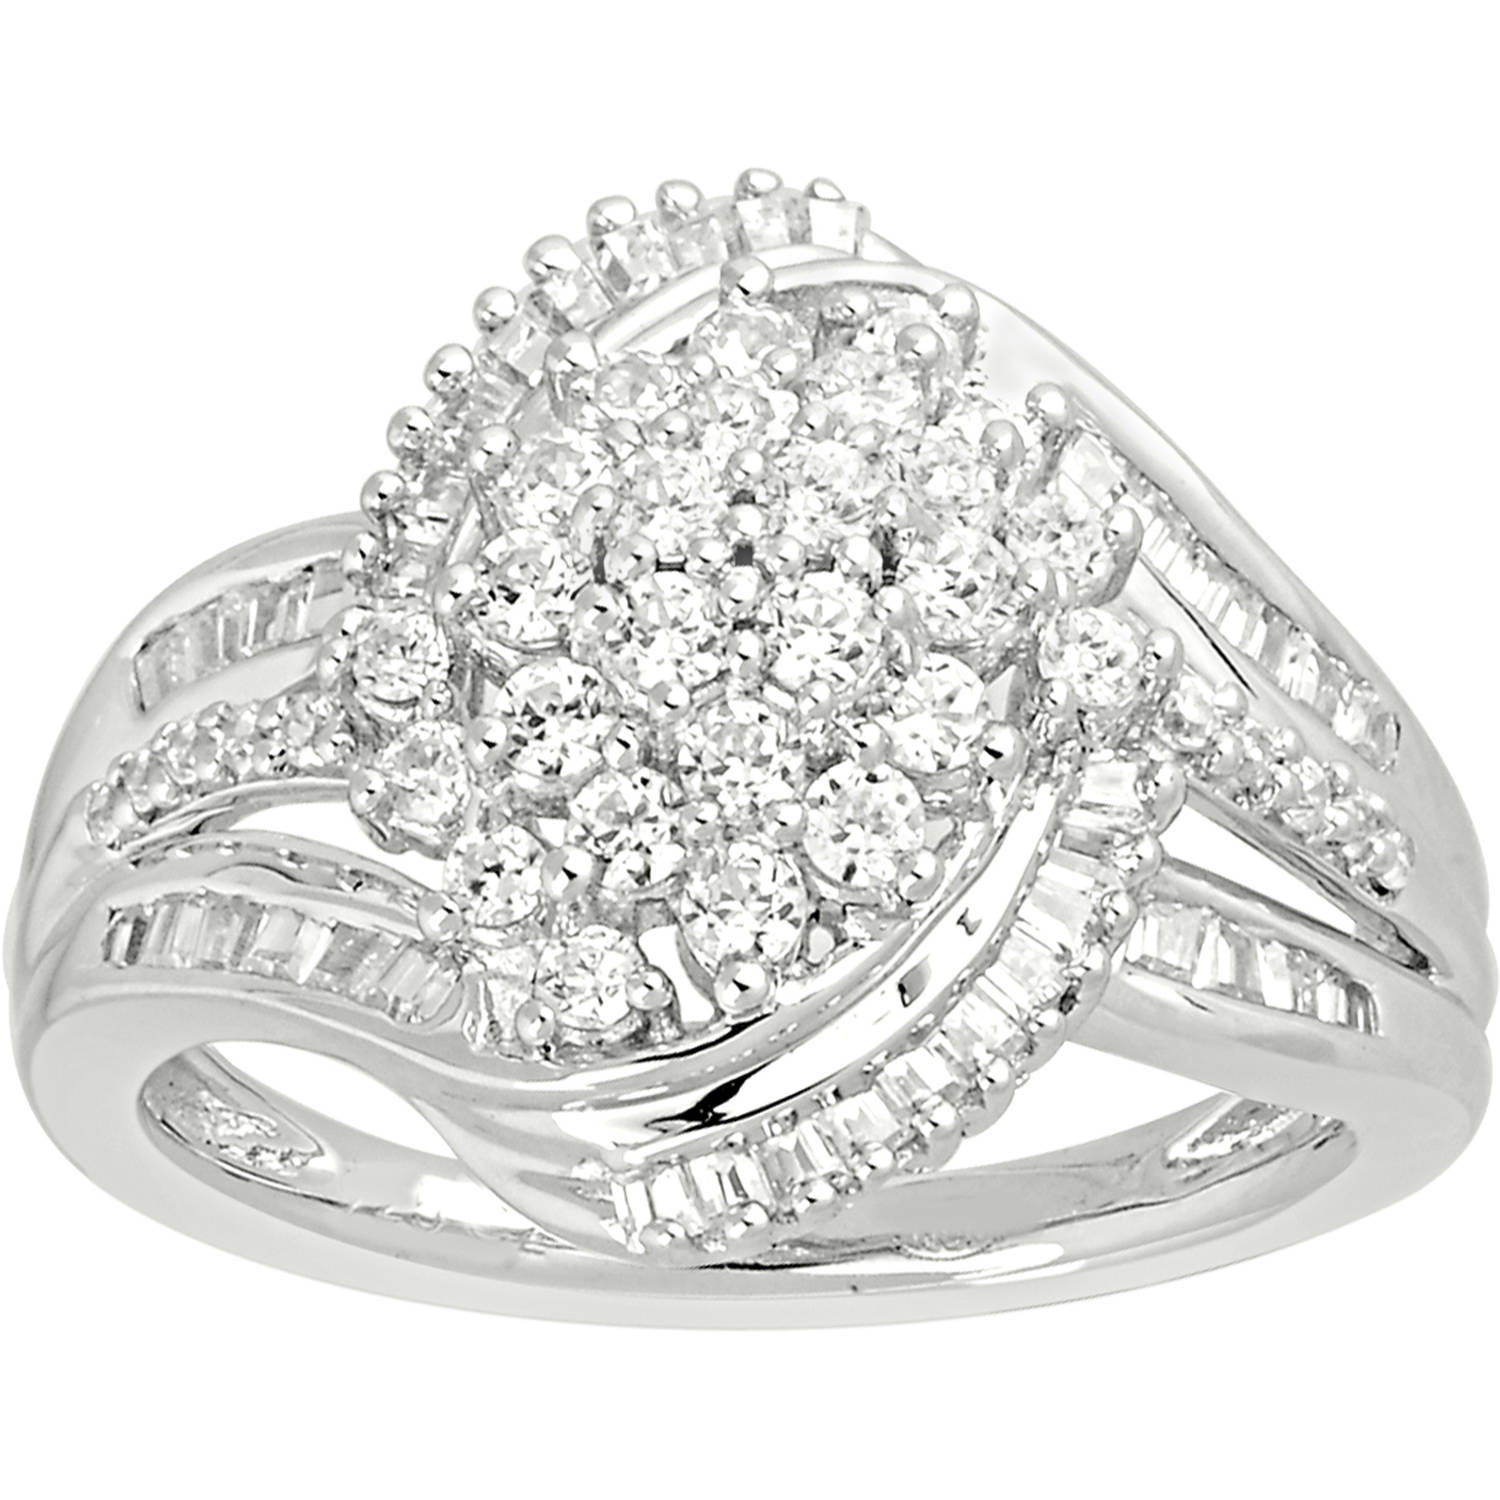 1 Carat T.W. Diamond 10kt White Gold Fashion Right-Hand Ring by INTERJEWEL